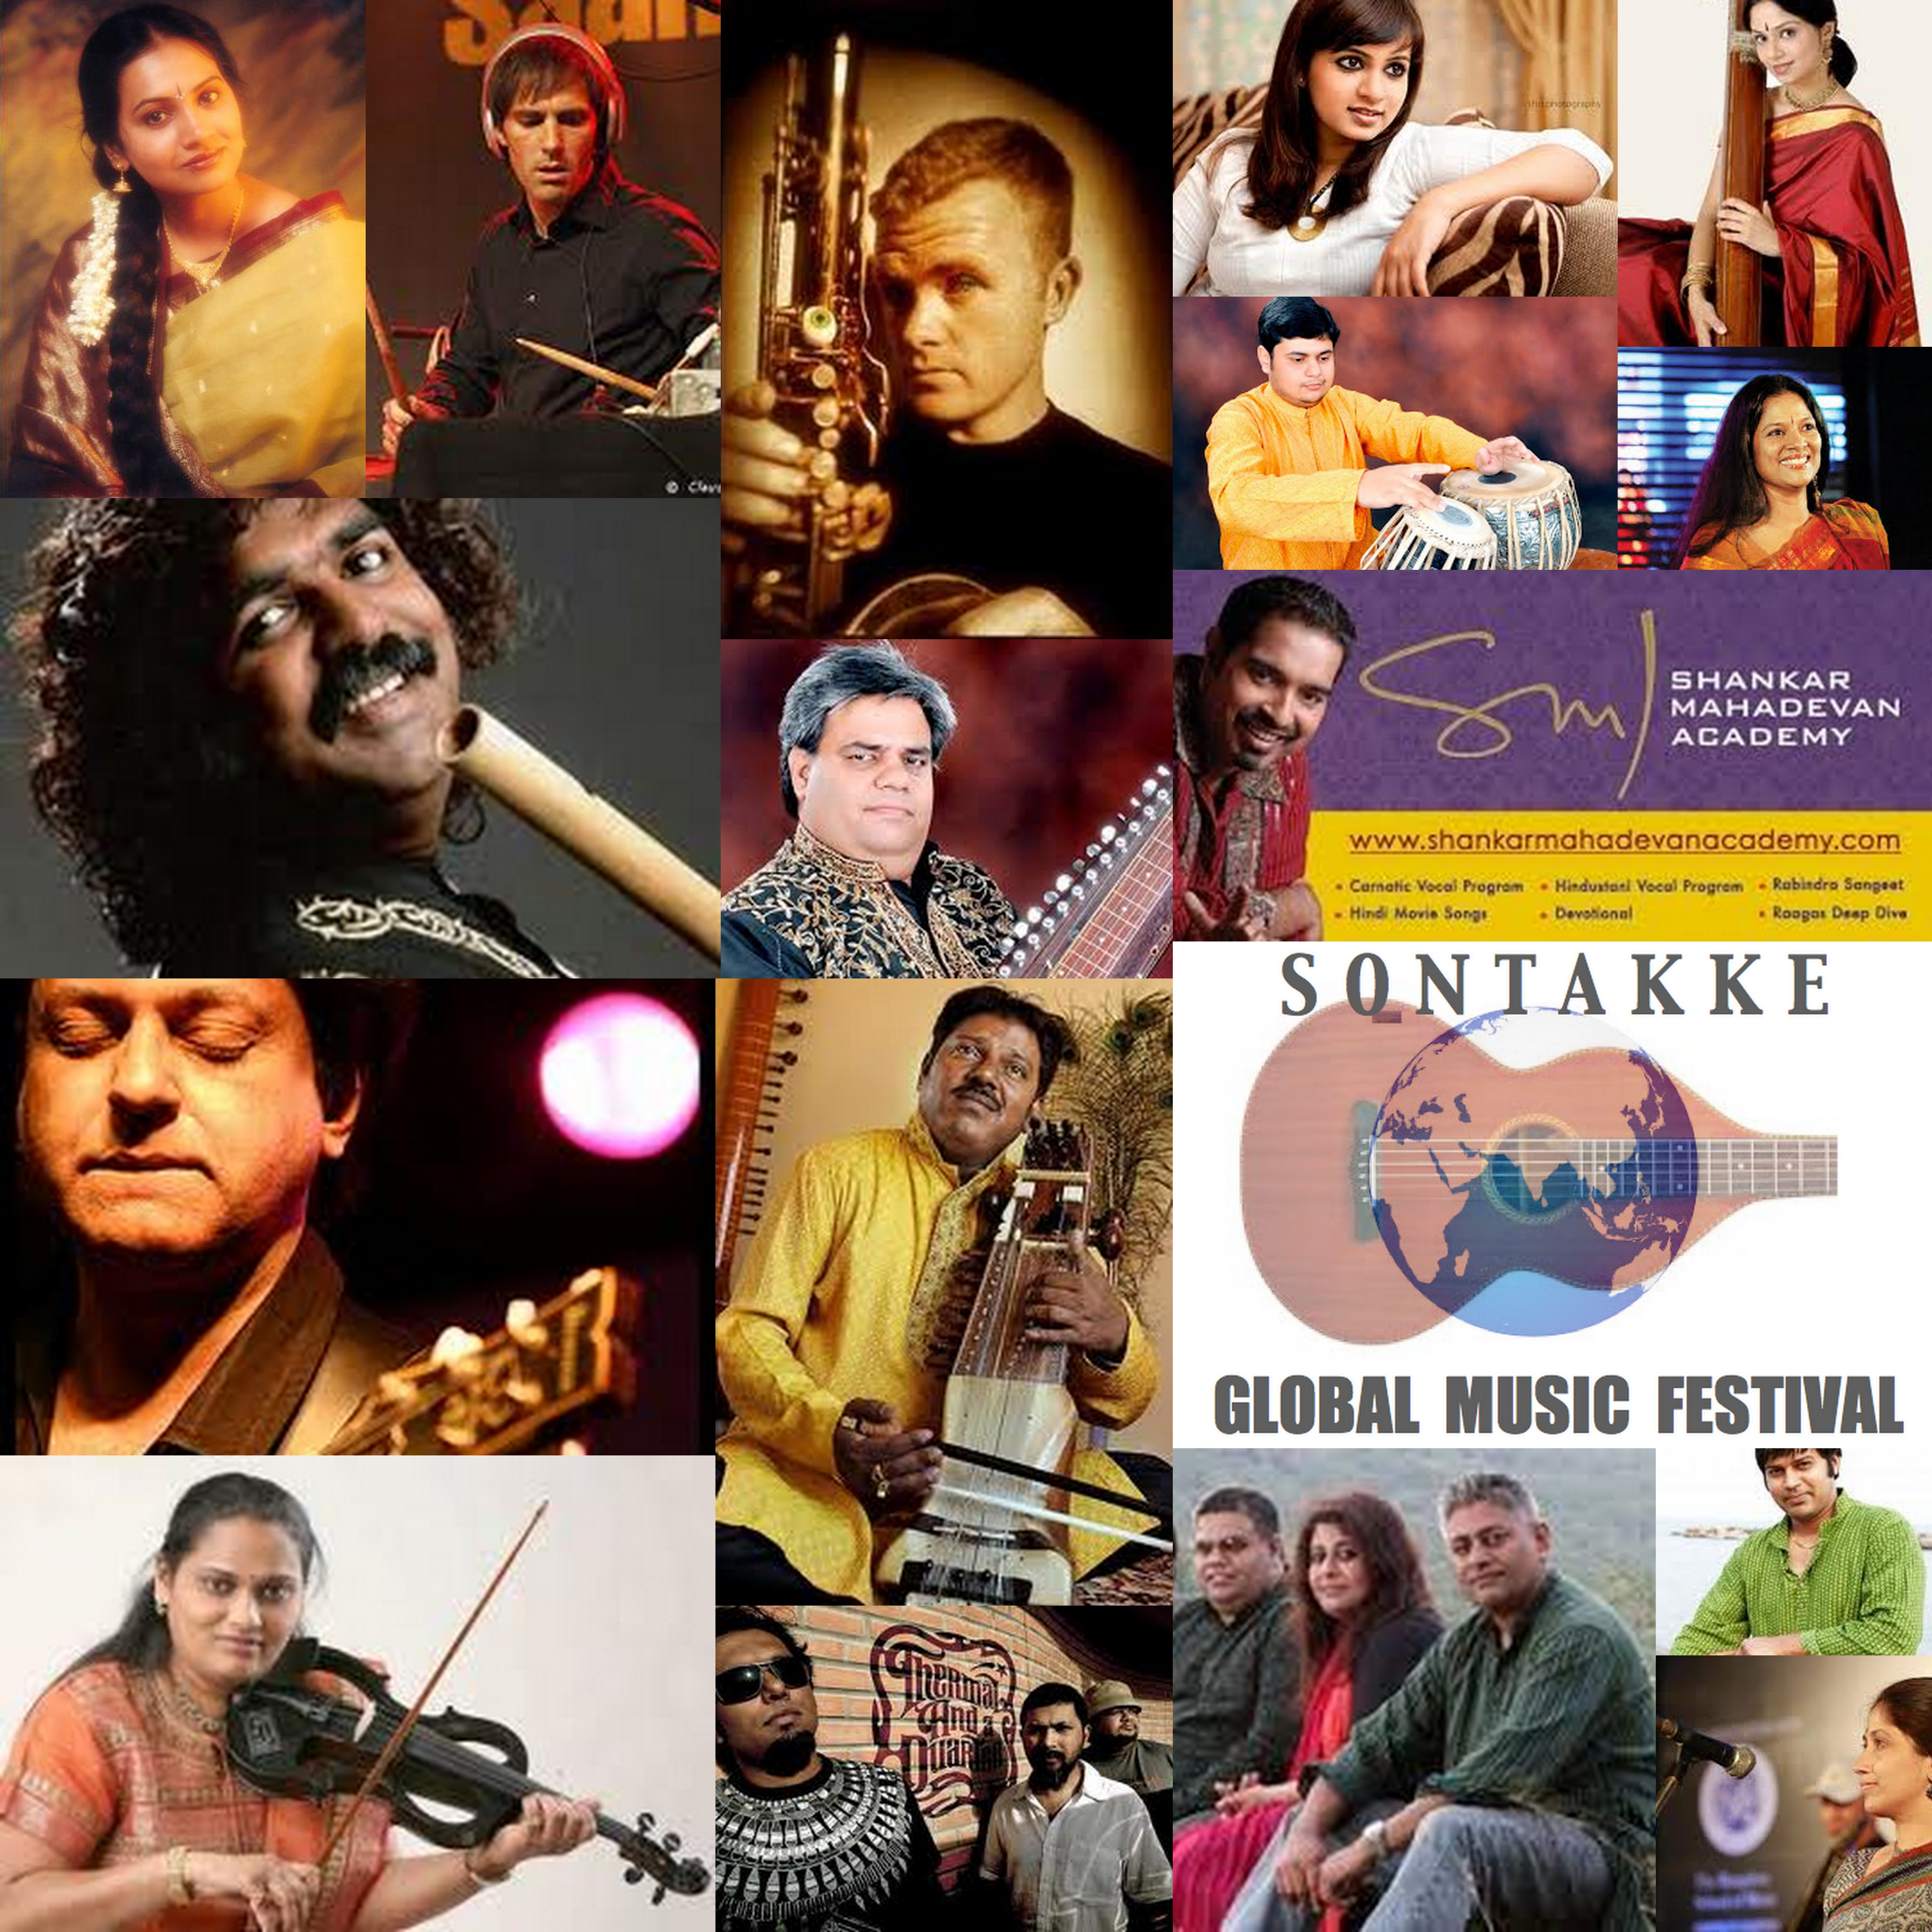 Sontakke Global Music Festival 2013